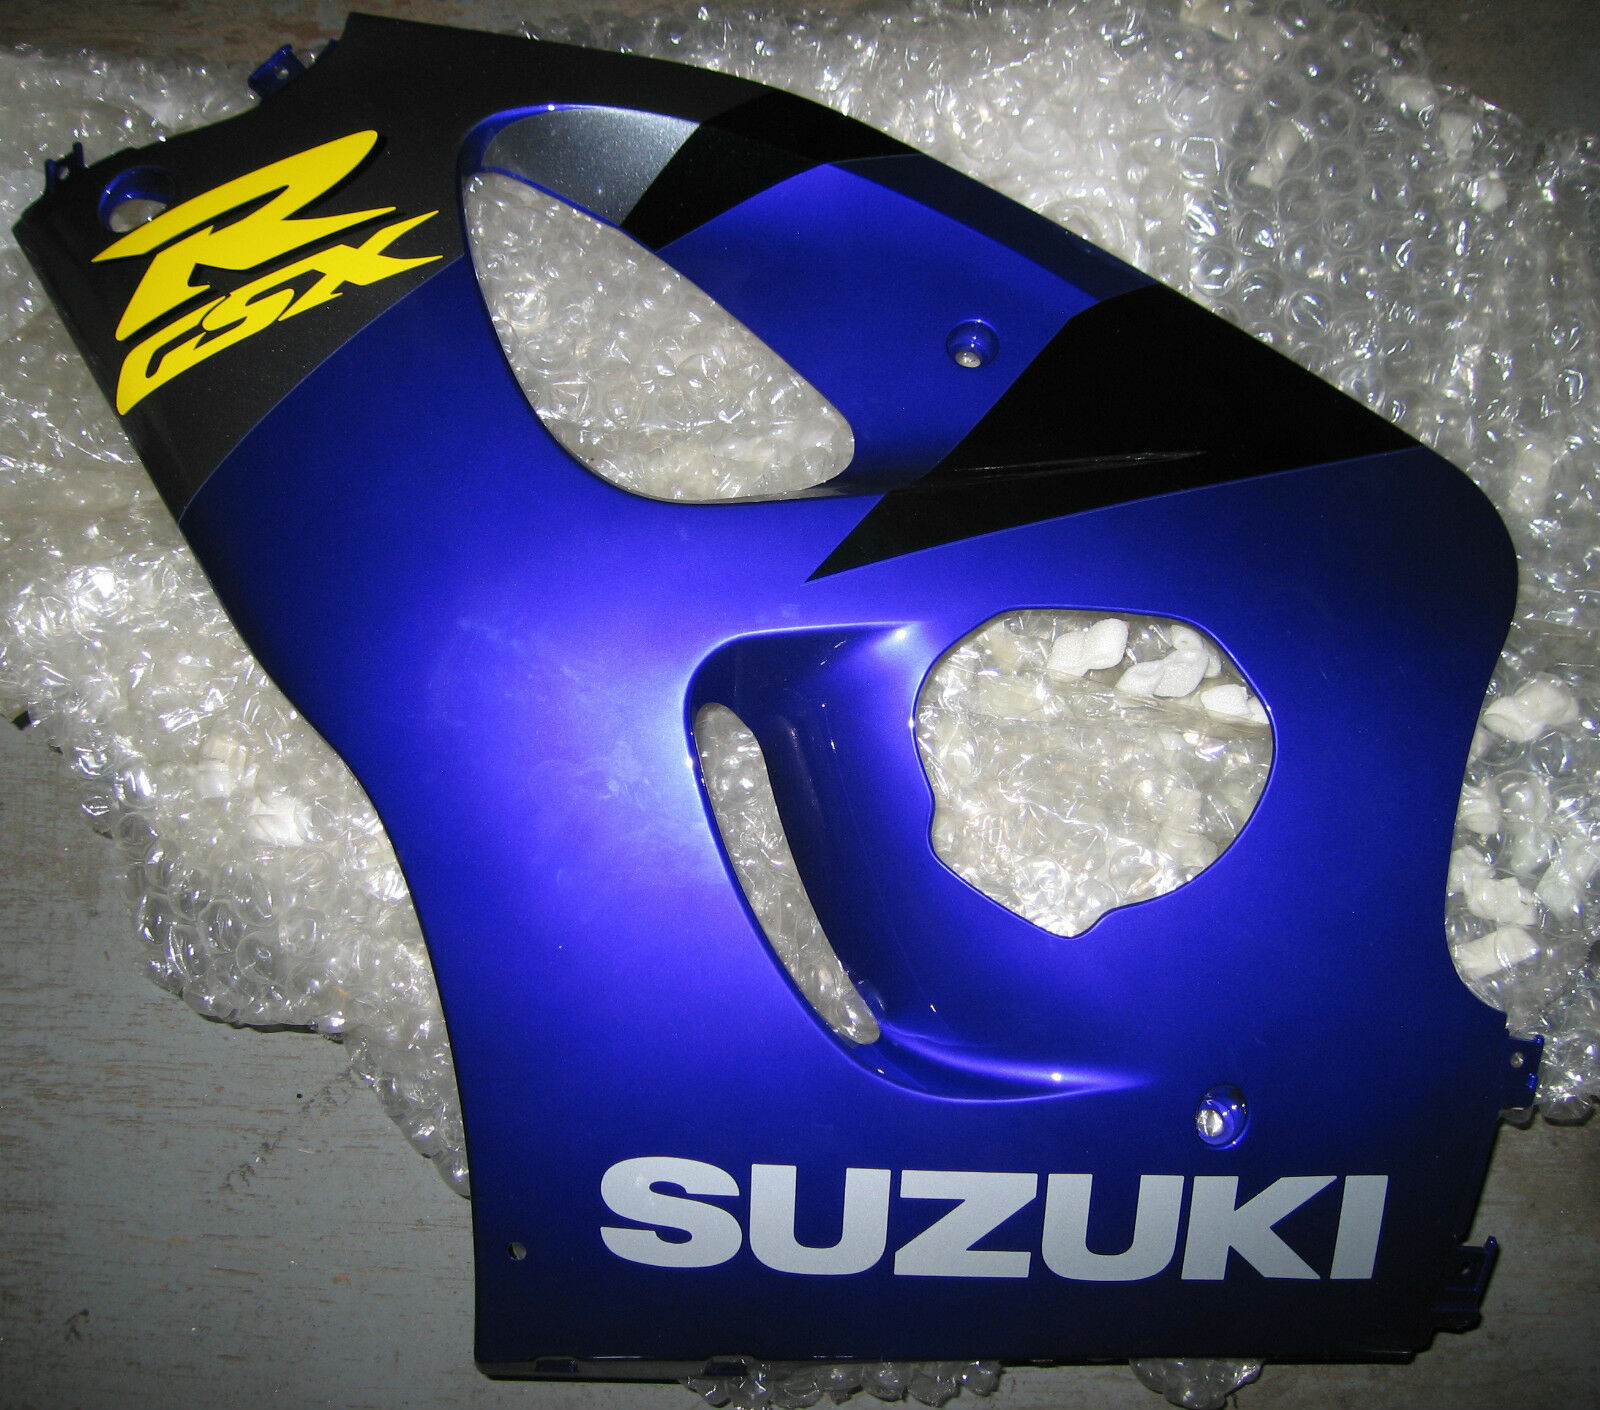 Ventilador Electrico Suzuki Gsx R 600 1997 2000 1780033e10 For Sale Online Ebay Submit your funny nicknames and cool gamertags and copy the best from the list. ebay